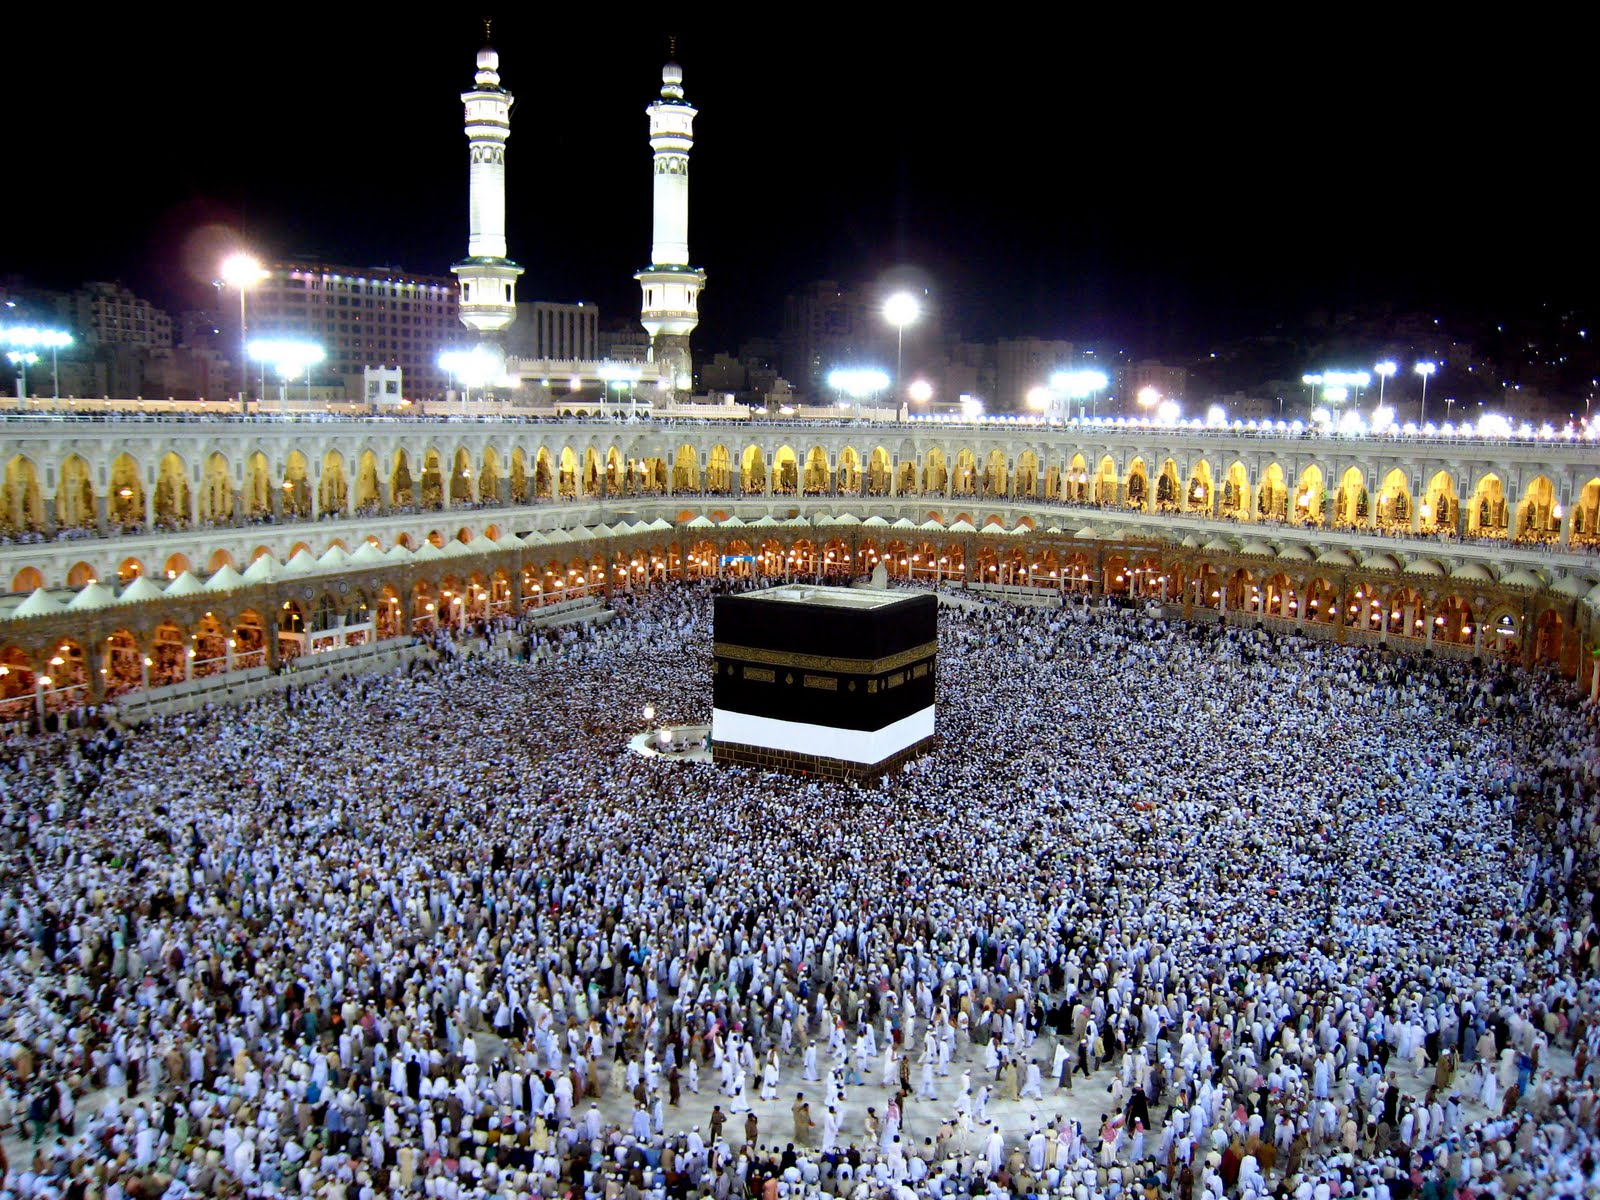 hajj-is-the-fifth-pillar-of-islam